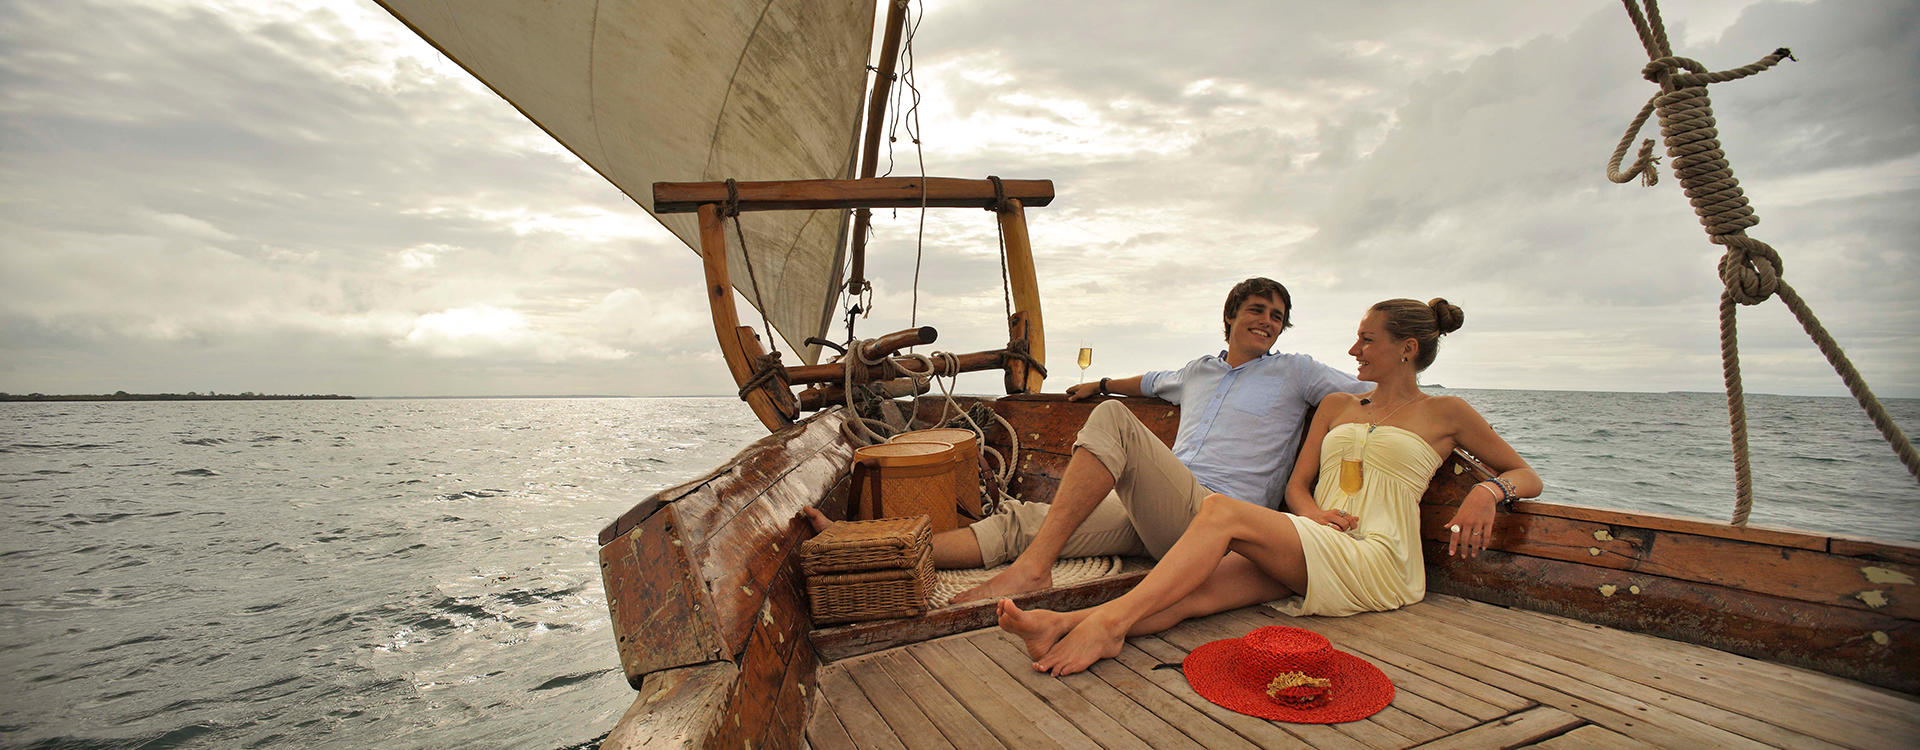 CE-Zanzibar_Romantic-Sunset-Dhow-Cruise